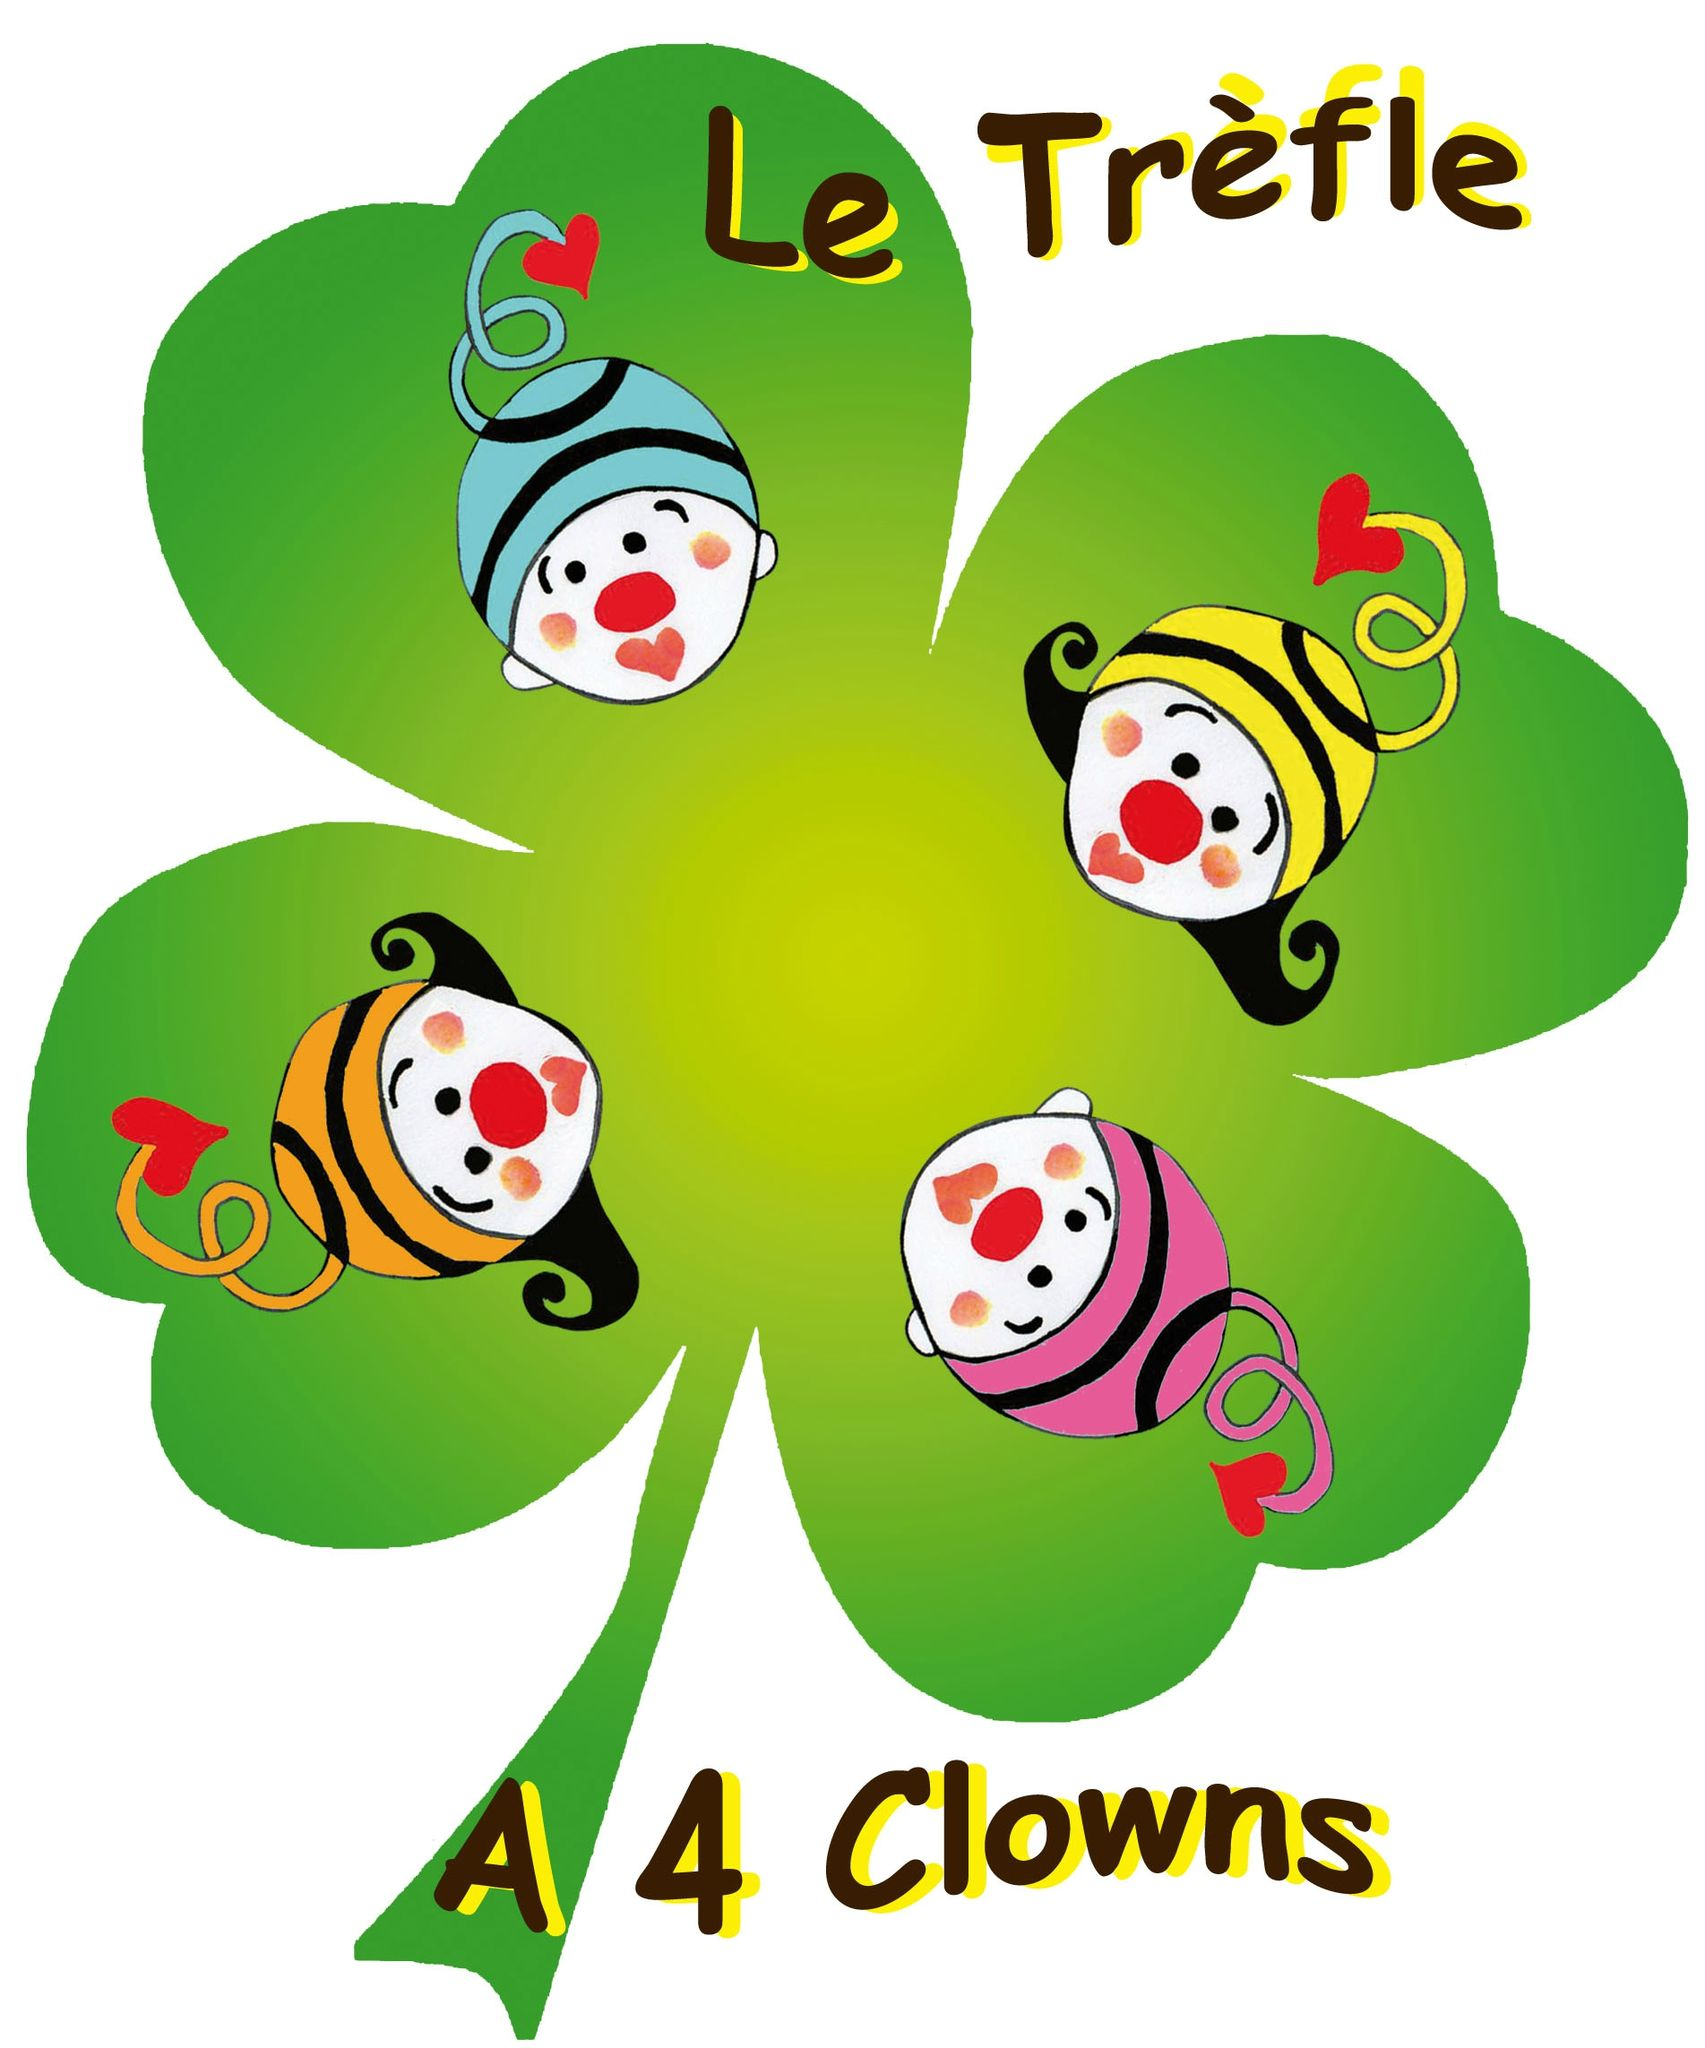 Logo association Le trèfle à 4 clowns